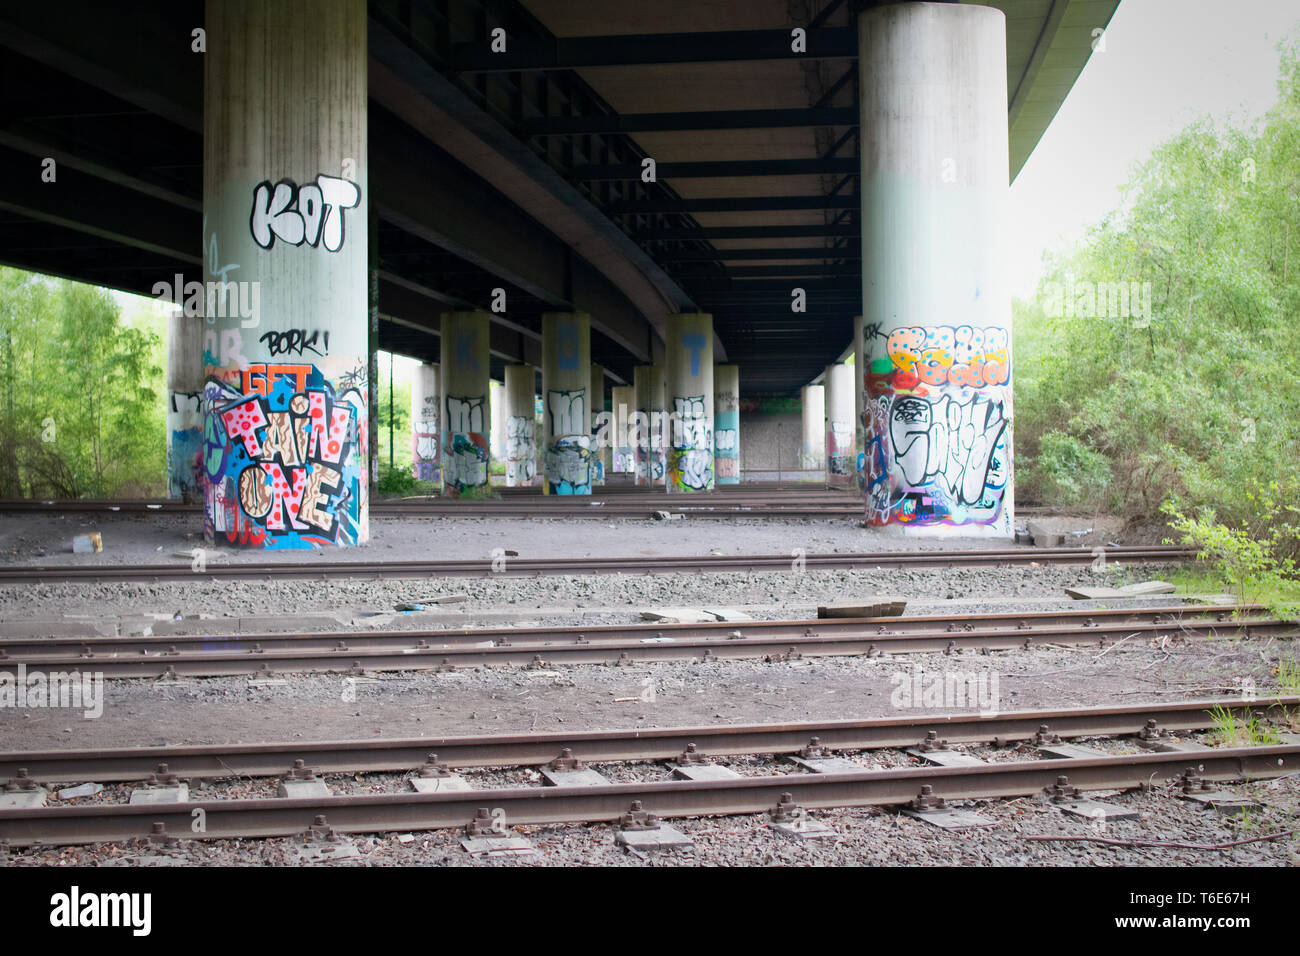 Lost place - old station in Dortmund, Germany - Stock Image